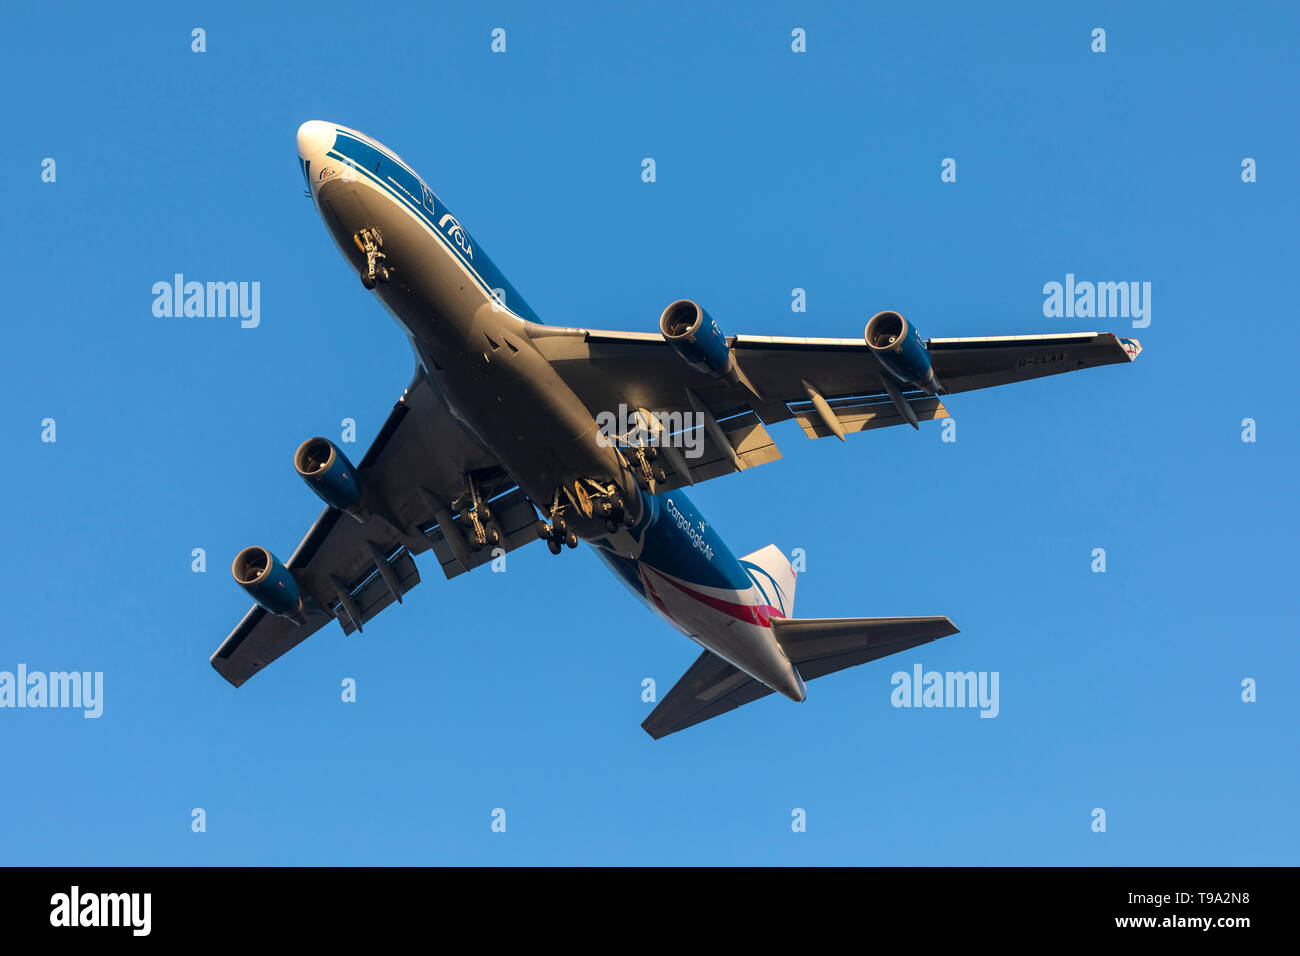 CargoLogicAir Boeing 747-446F/SCD (G-CLAA) on long finals runway 31 in the last rays of sunlight. Stock Photo